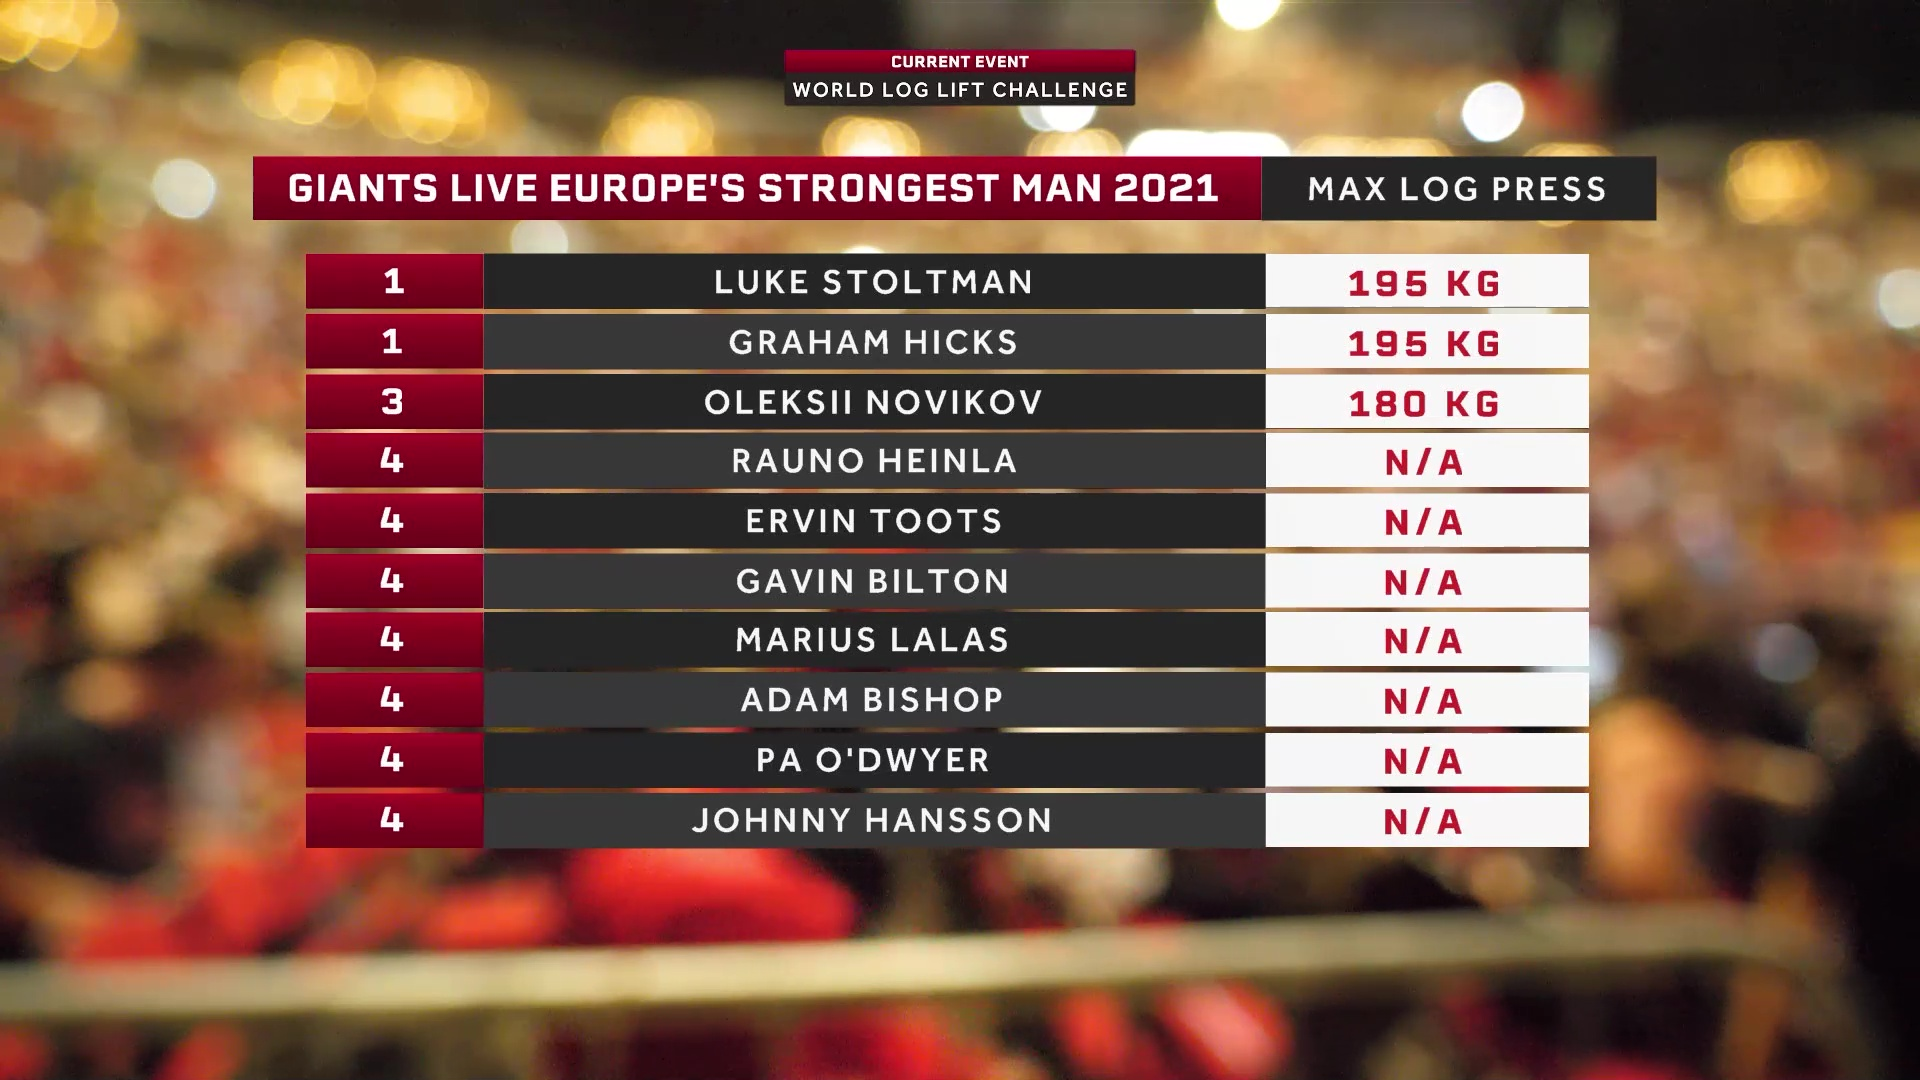 Europe's Strongest Man 2021 - Max Log Lift Results